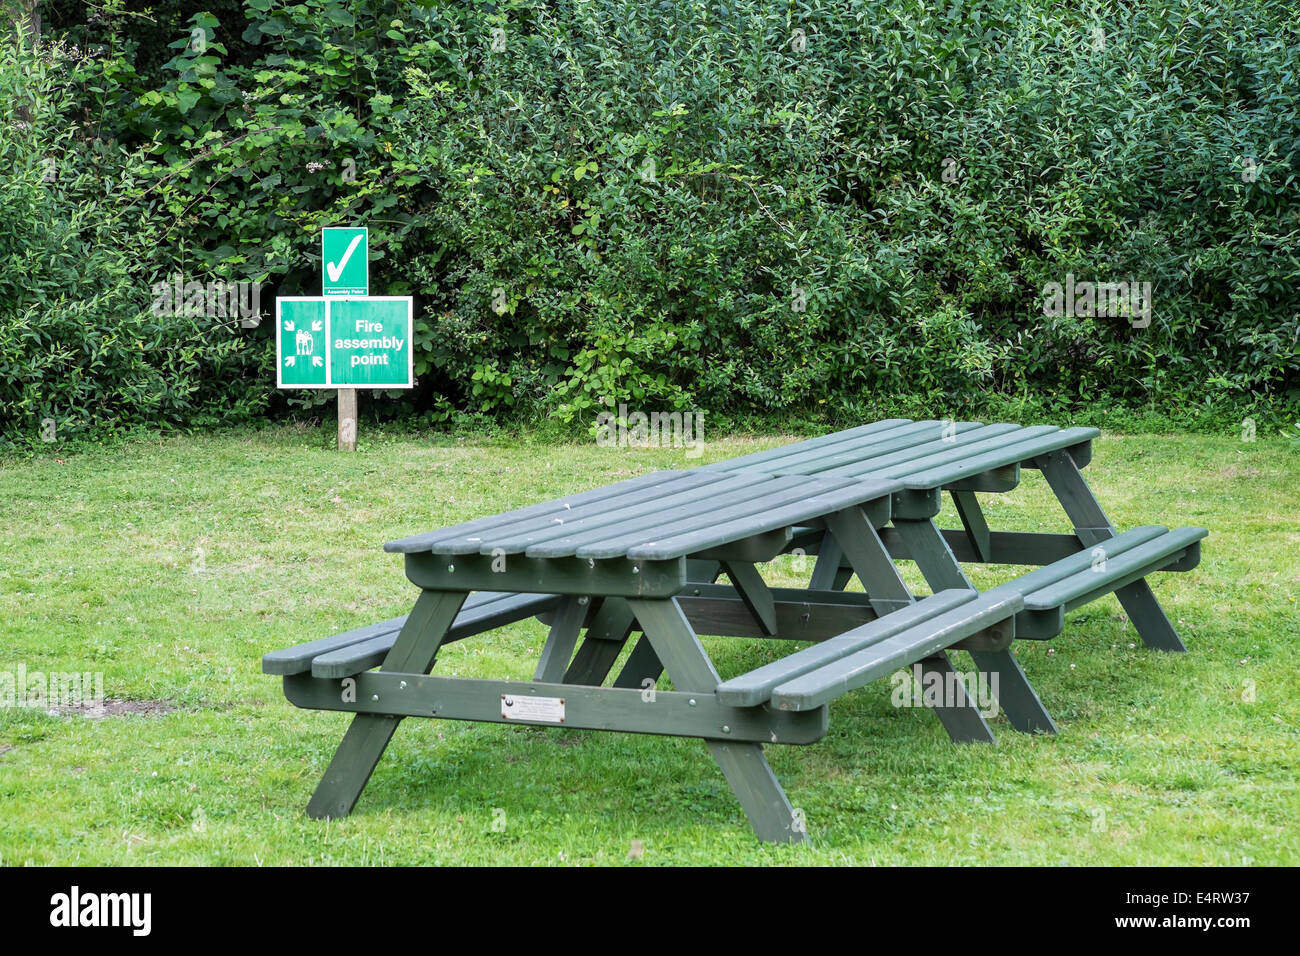 Picnic bench and fire assembly point sign - Stock Image